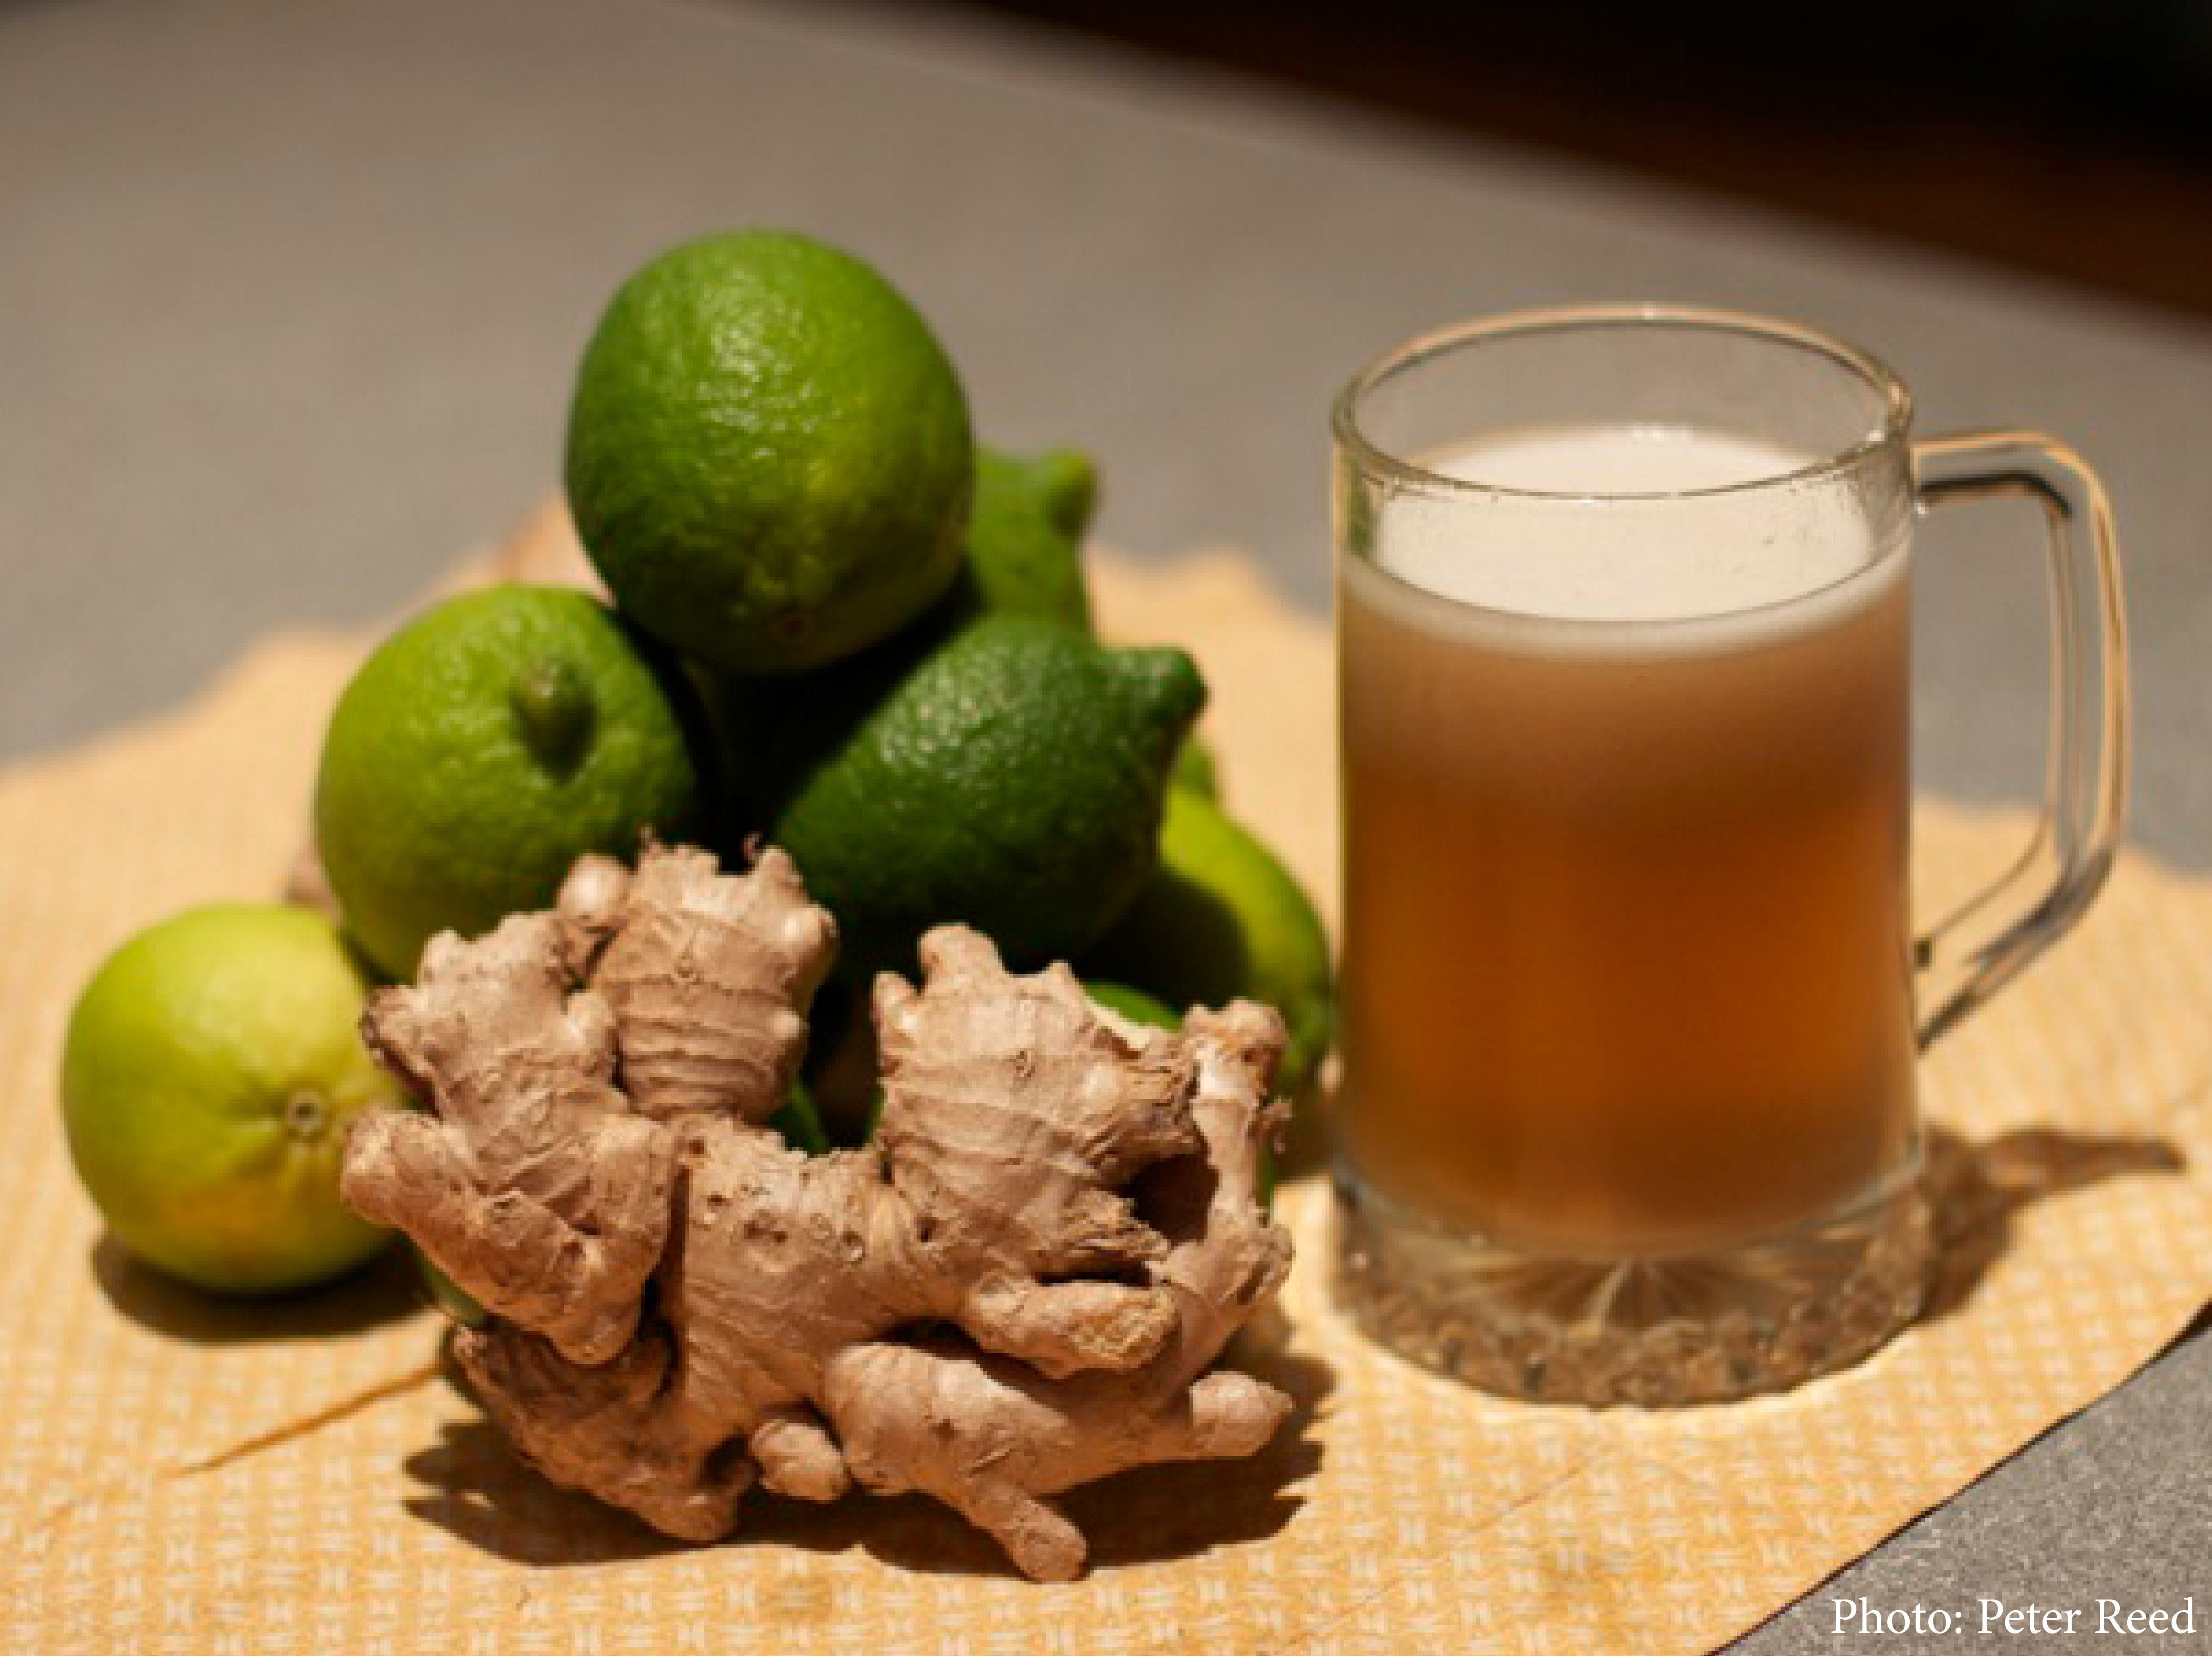 Recipe: Ginger Beer